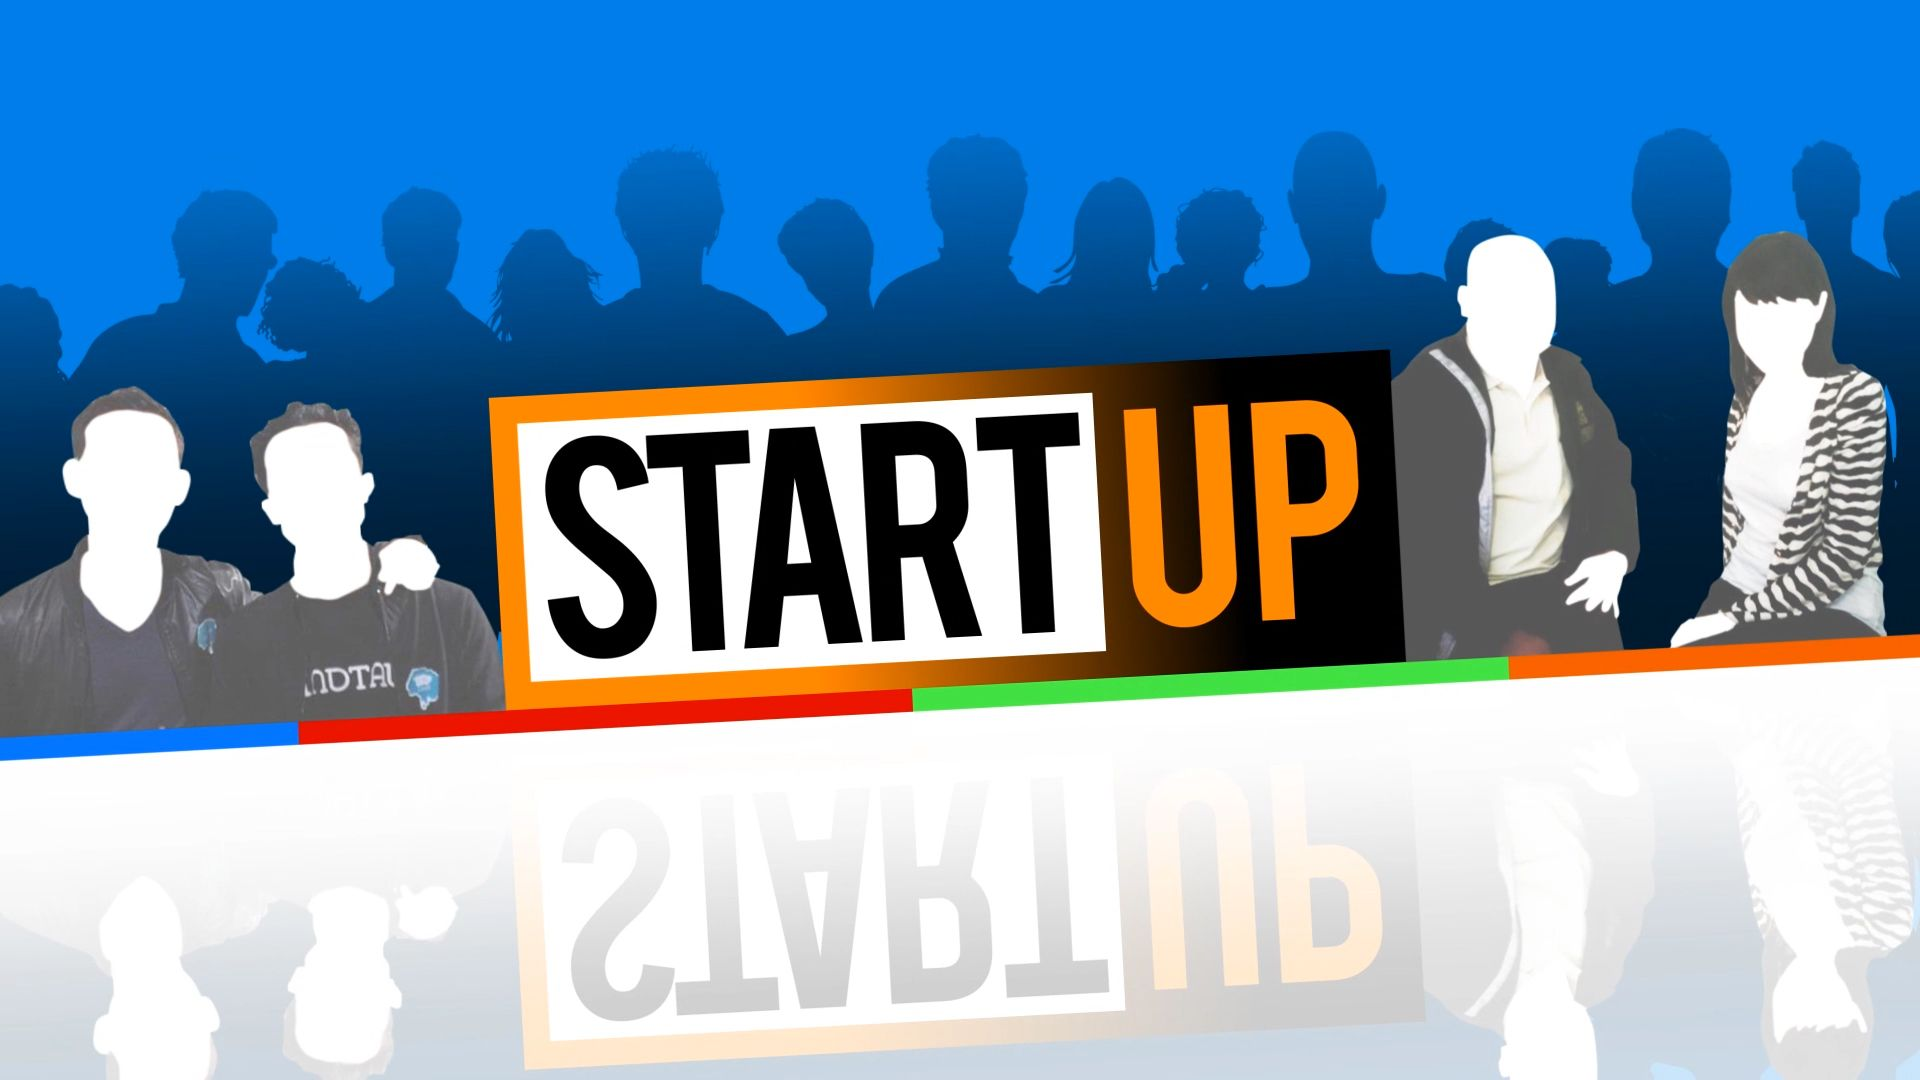 India is world's third biggest startup hub | http://goo.gl/2uunlY